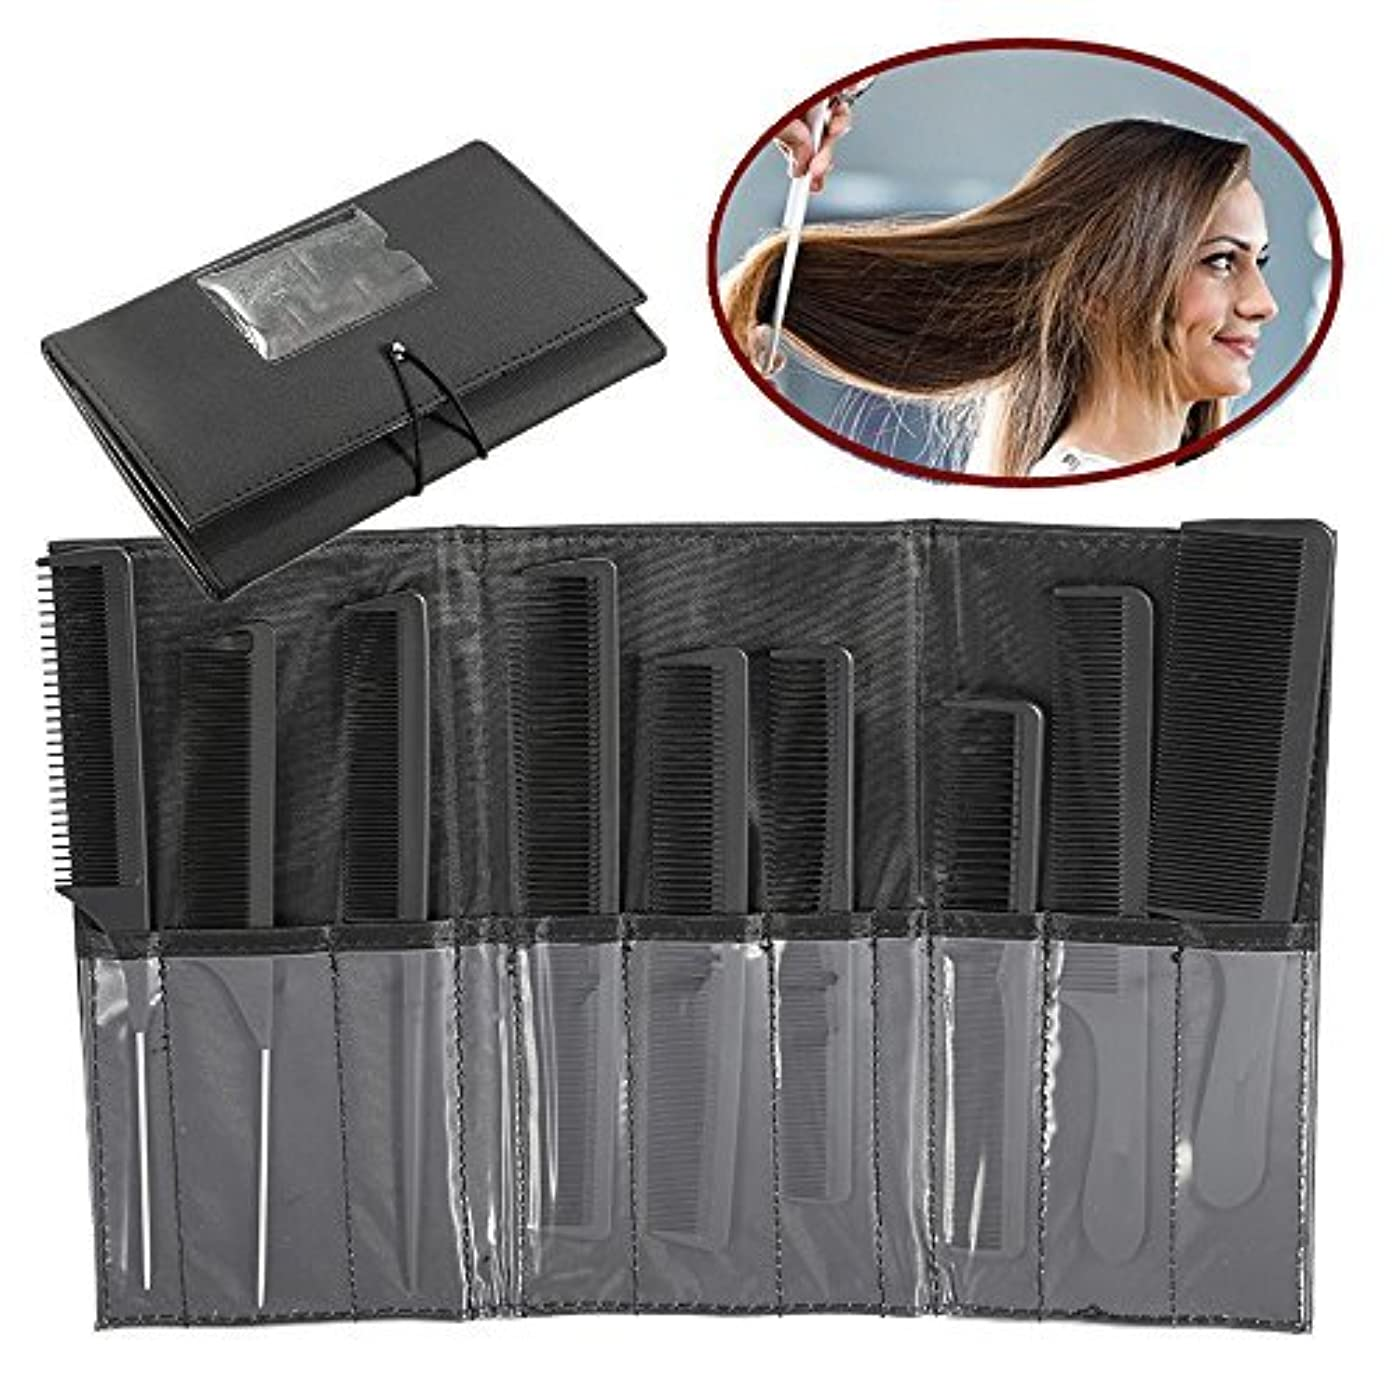 組依存する聖歌ZJchao Professional Styling Comb Set, 9Pcs Salon Hairdressing Kits, Metal Pintail Teaser/Sharp Tail/Wide Tooth...